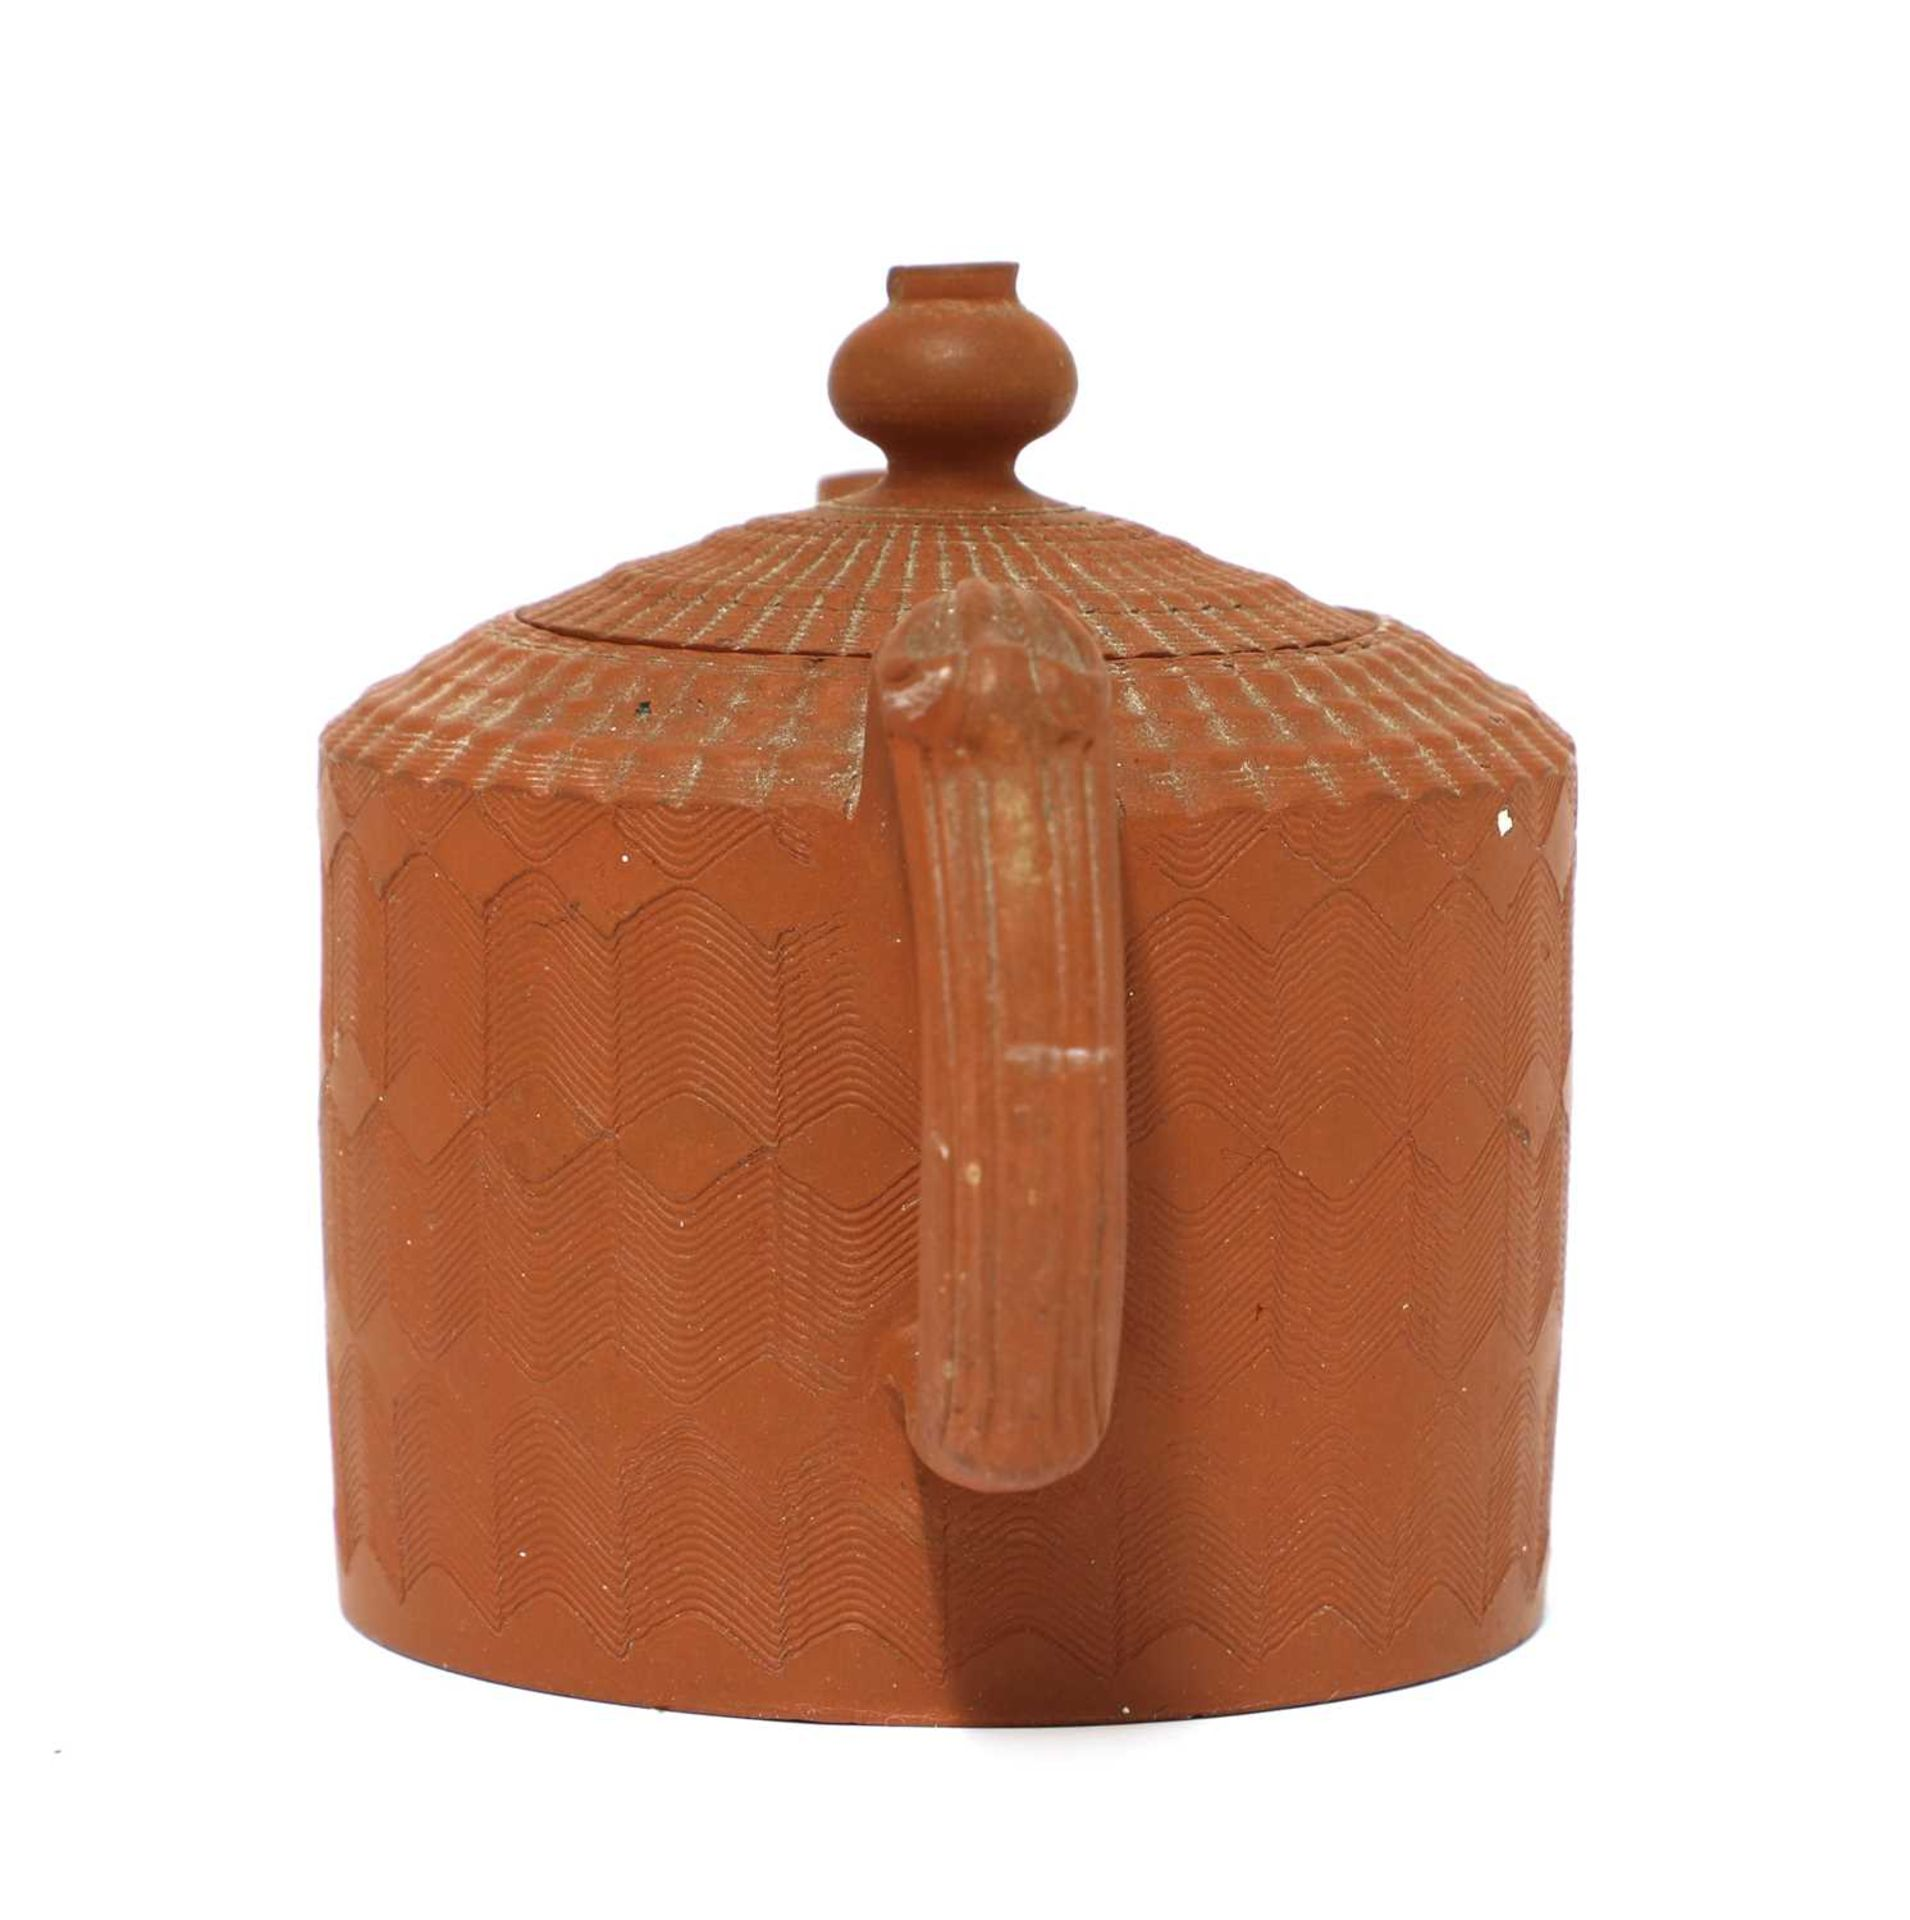 A Staffordshire redware miniature cylindrical teapot and cover, - Image 2 of 4